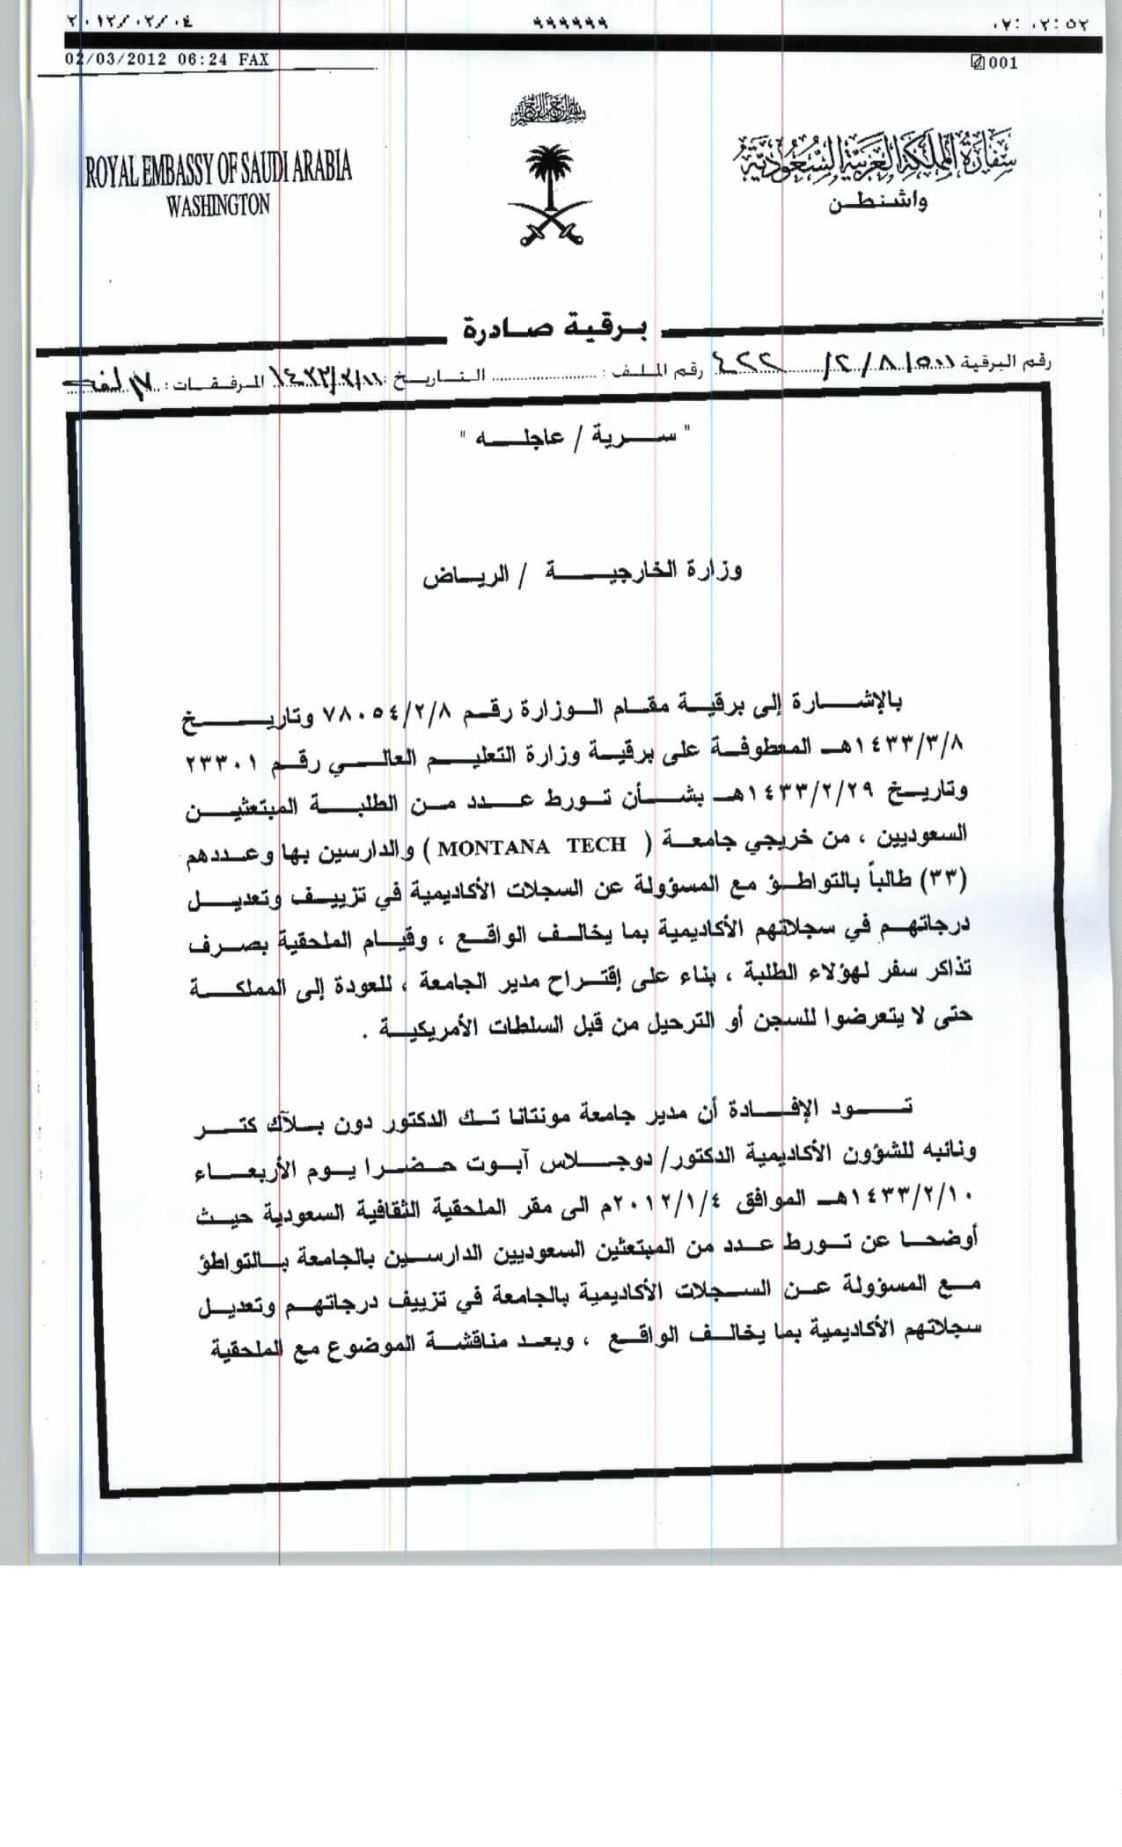 Saudi-Montana Tech document from WikiLeaks